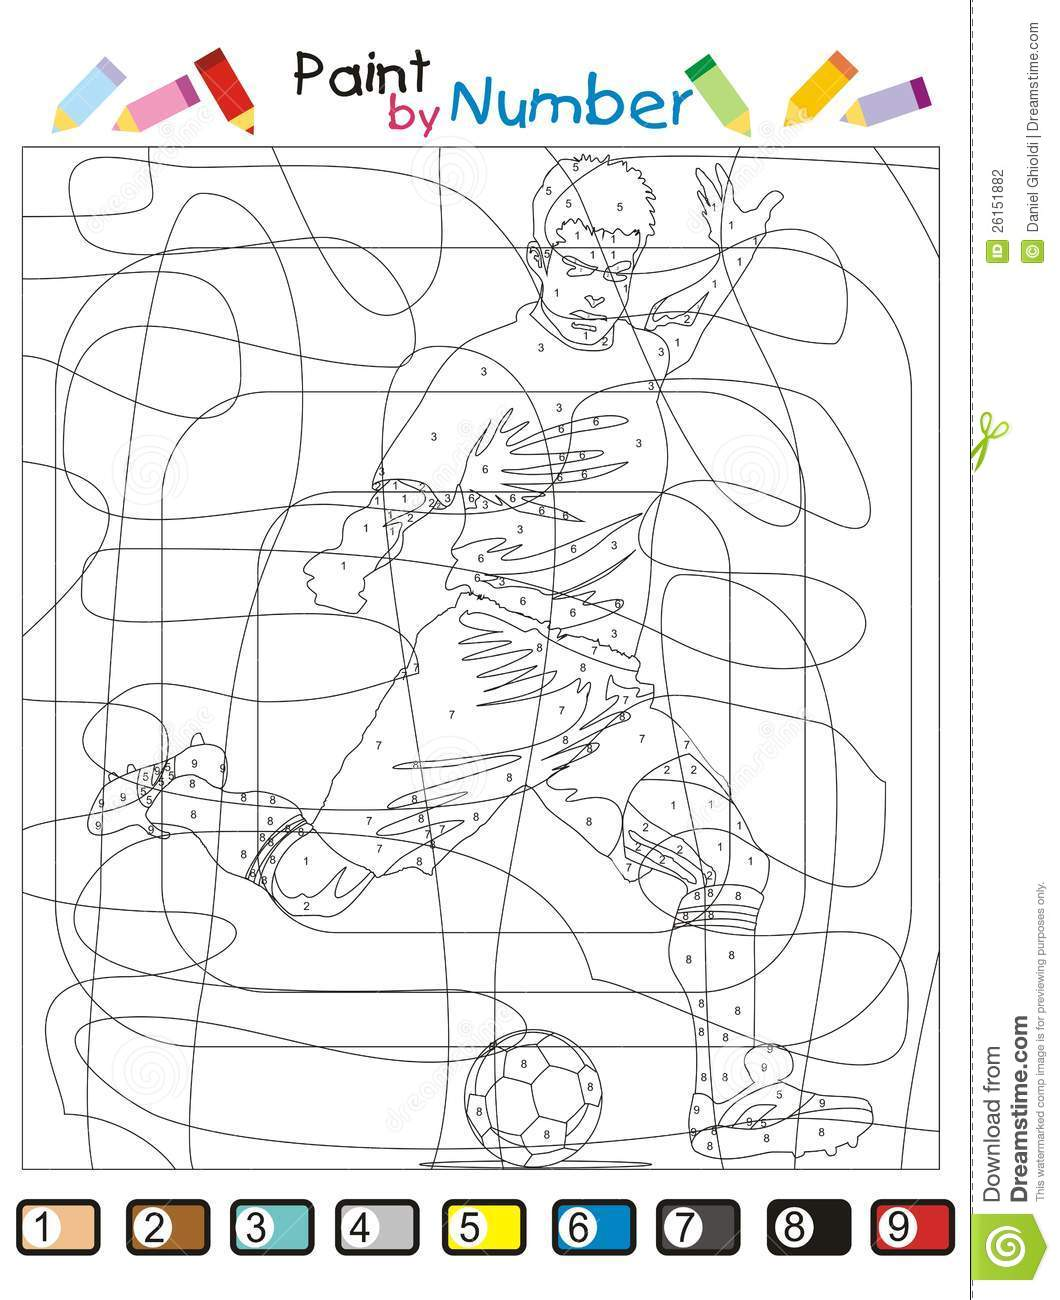 paint by number the soccer player stock photography image